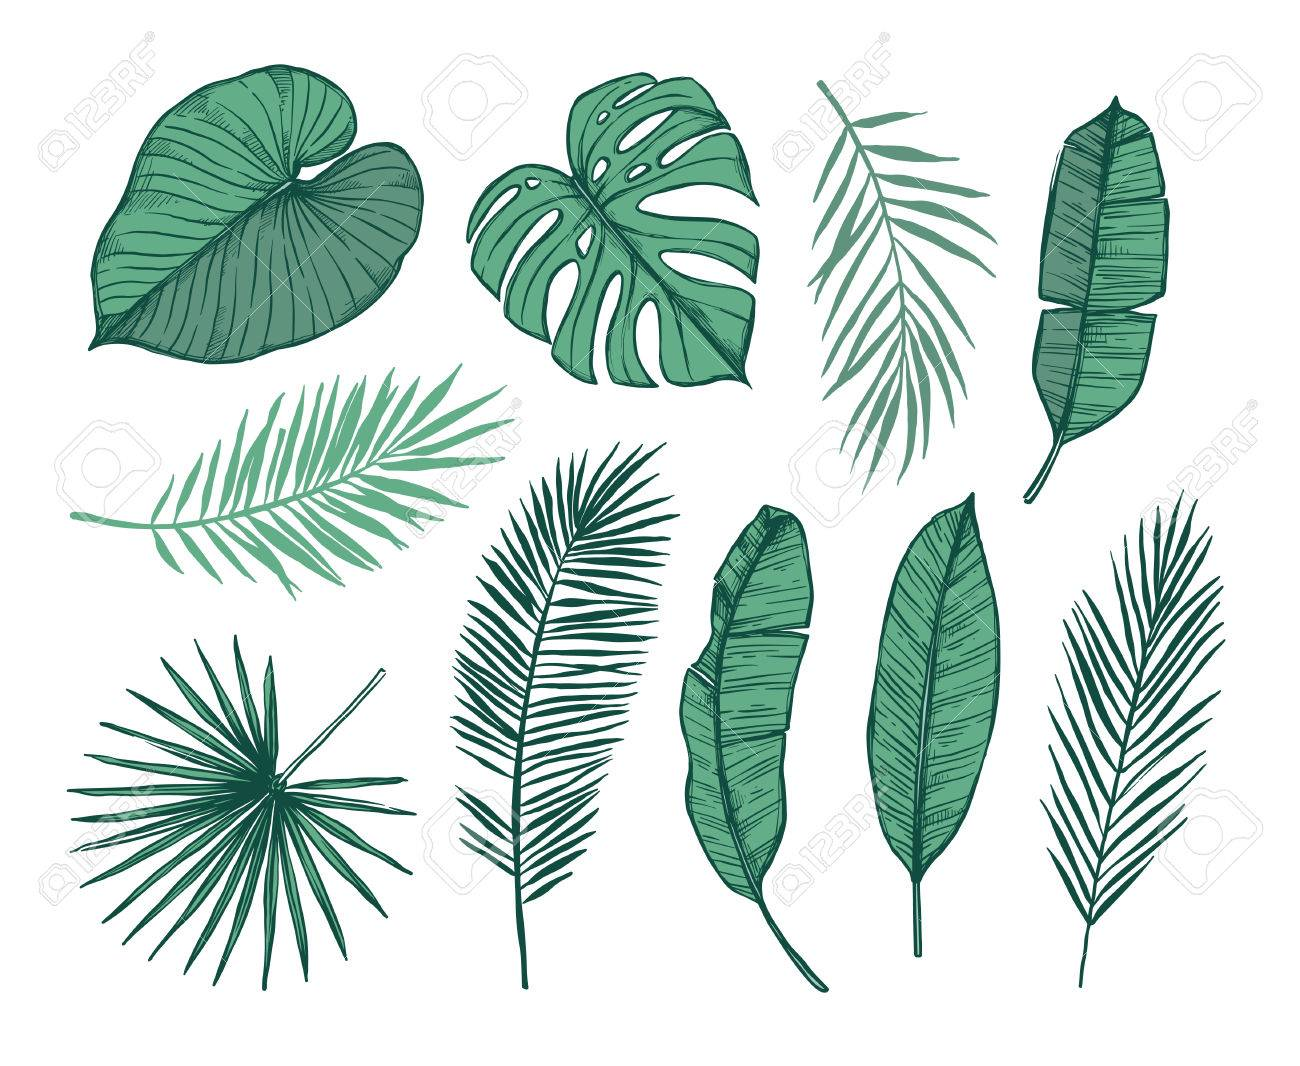 Hand Drawn Vector Illustration Palm Leaves Monstera Areca Royalty Free Cliparts Vectors And Stock Illustration Image 82088892 Monstera plant leaf, banana plants and green tropics palm leaves isolated vector illustration. hand drawn vector illustration palm leaves monstera areca